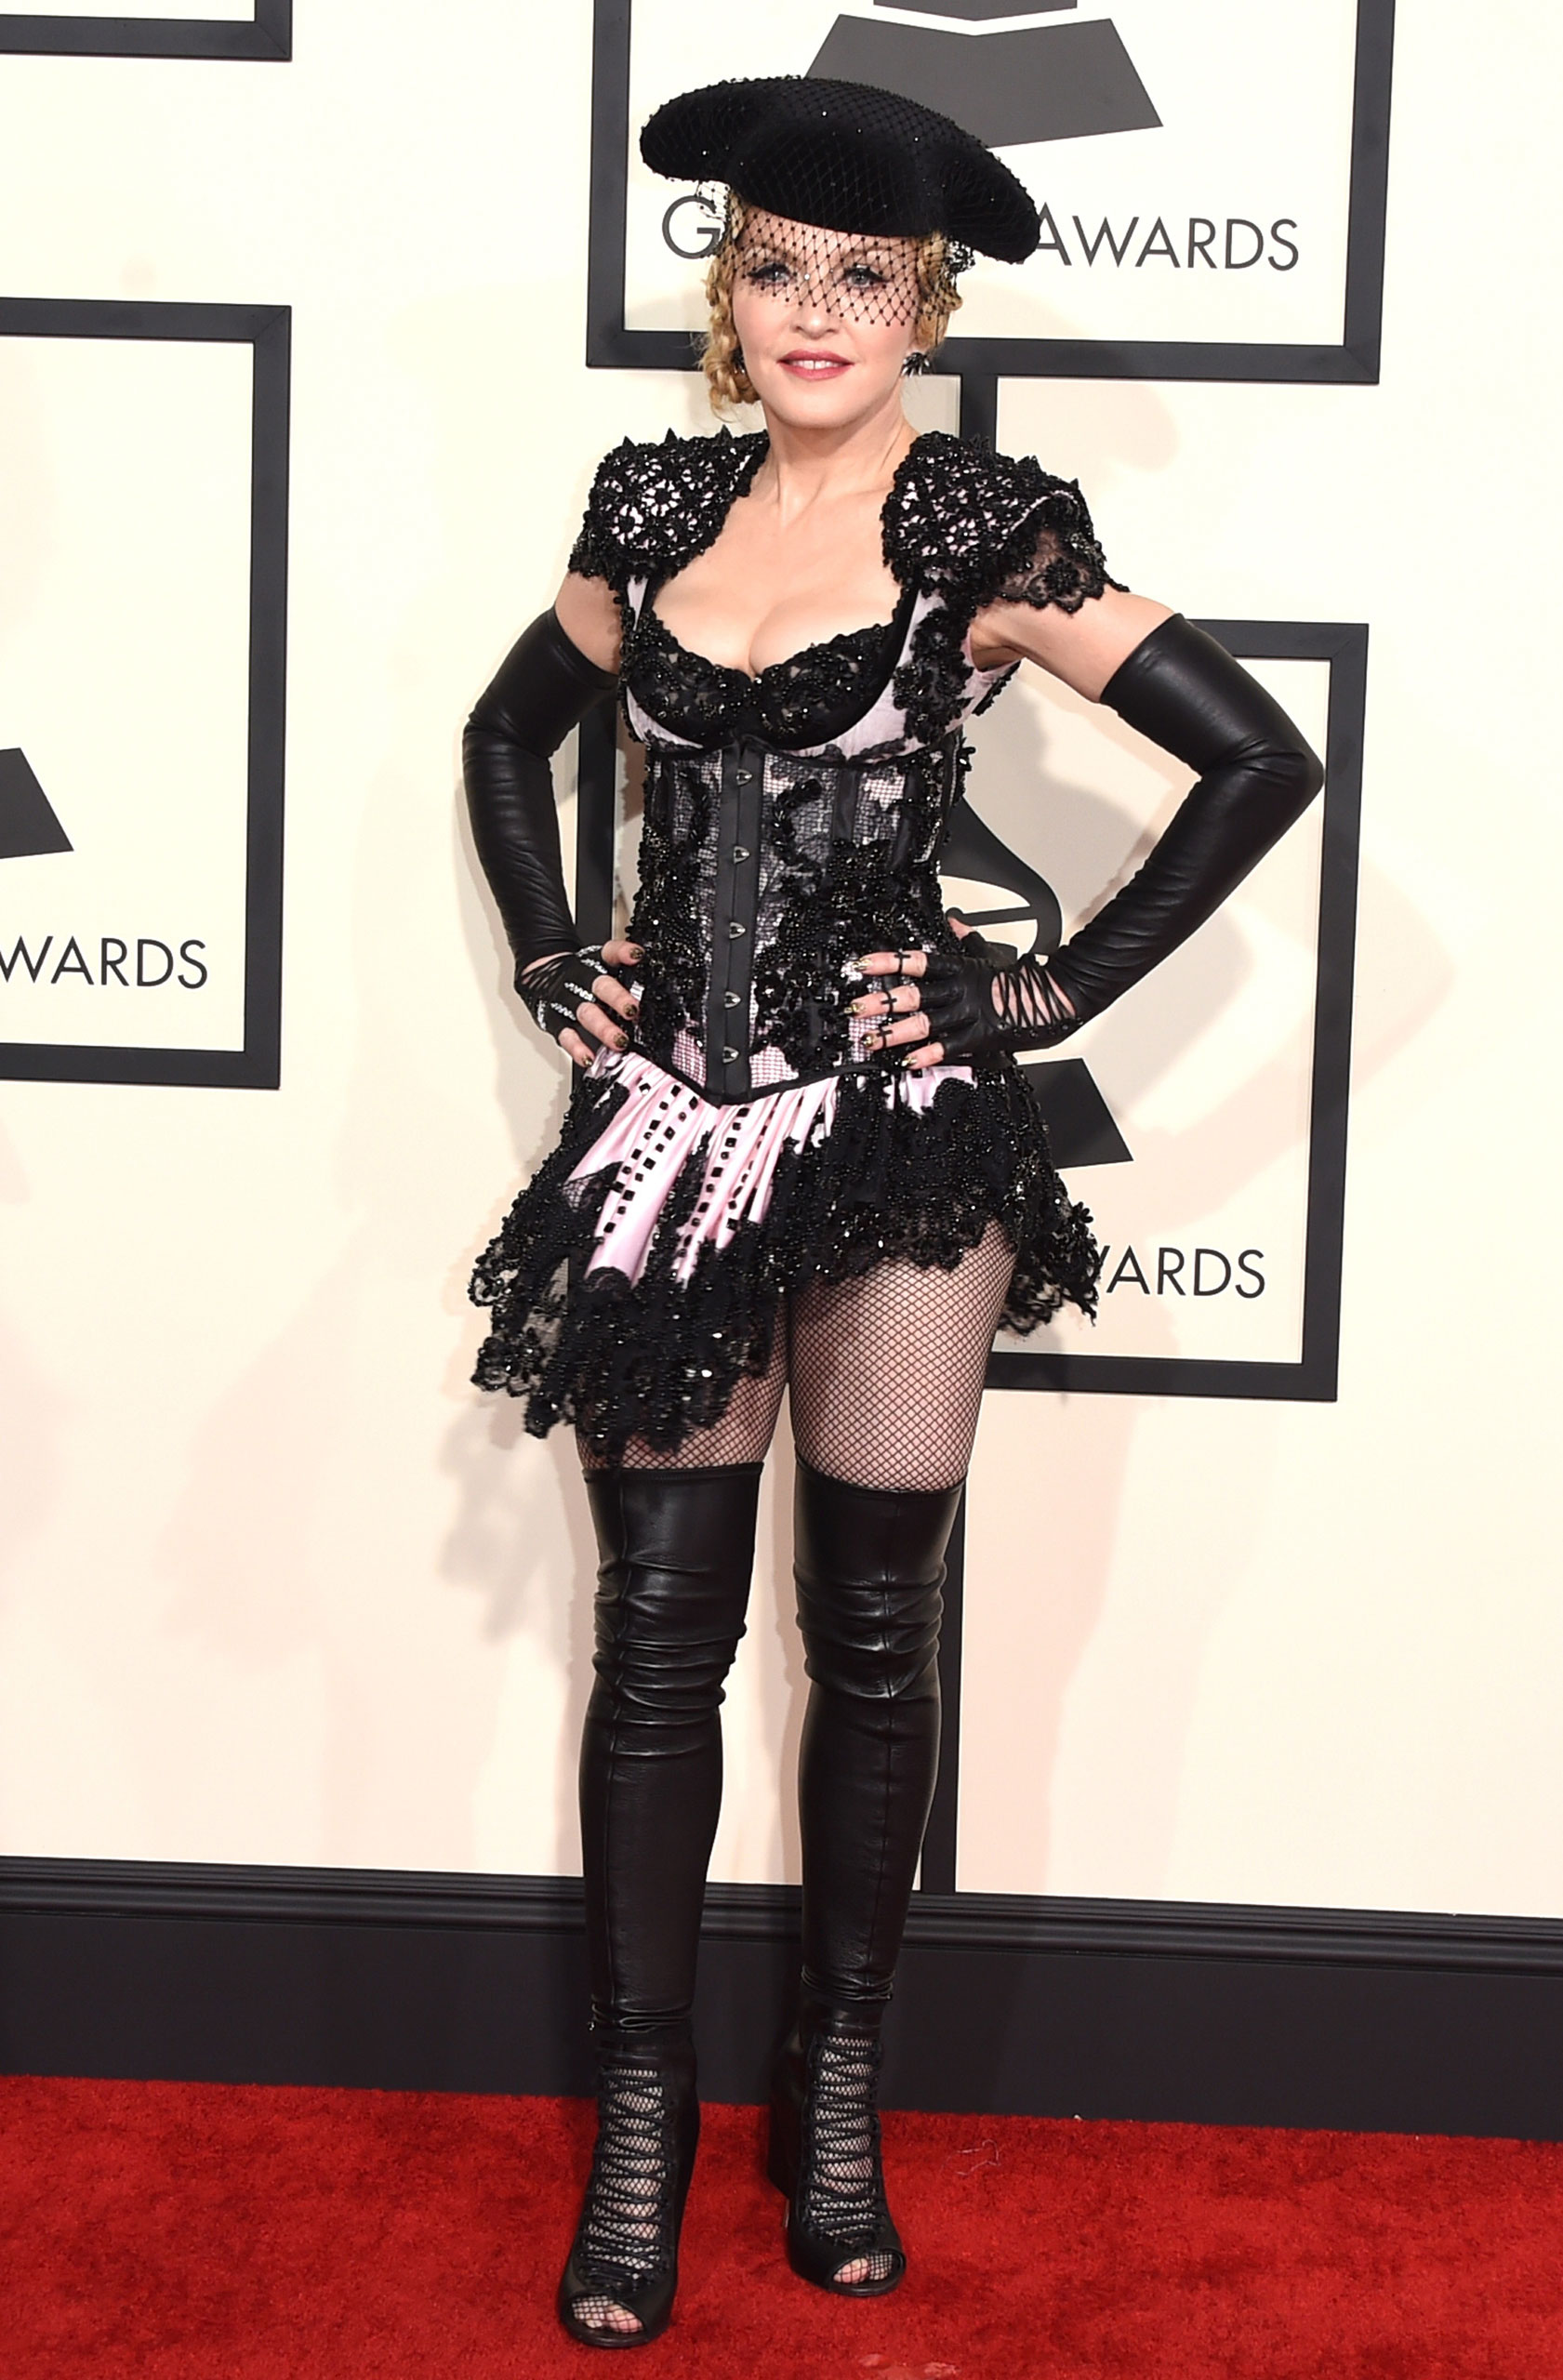 Madonna attends the 57th Annual Grammy Awards at the Staples Center on Feb. 8, 2015 in Los Angeles, Calif.